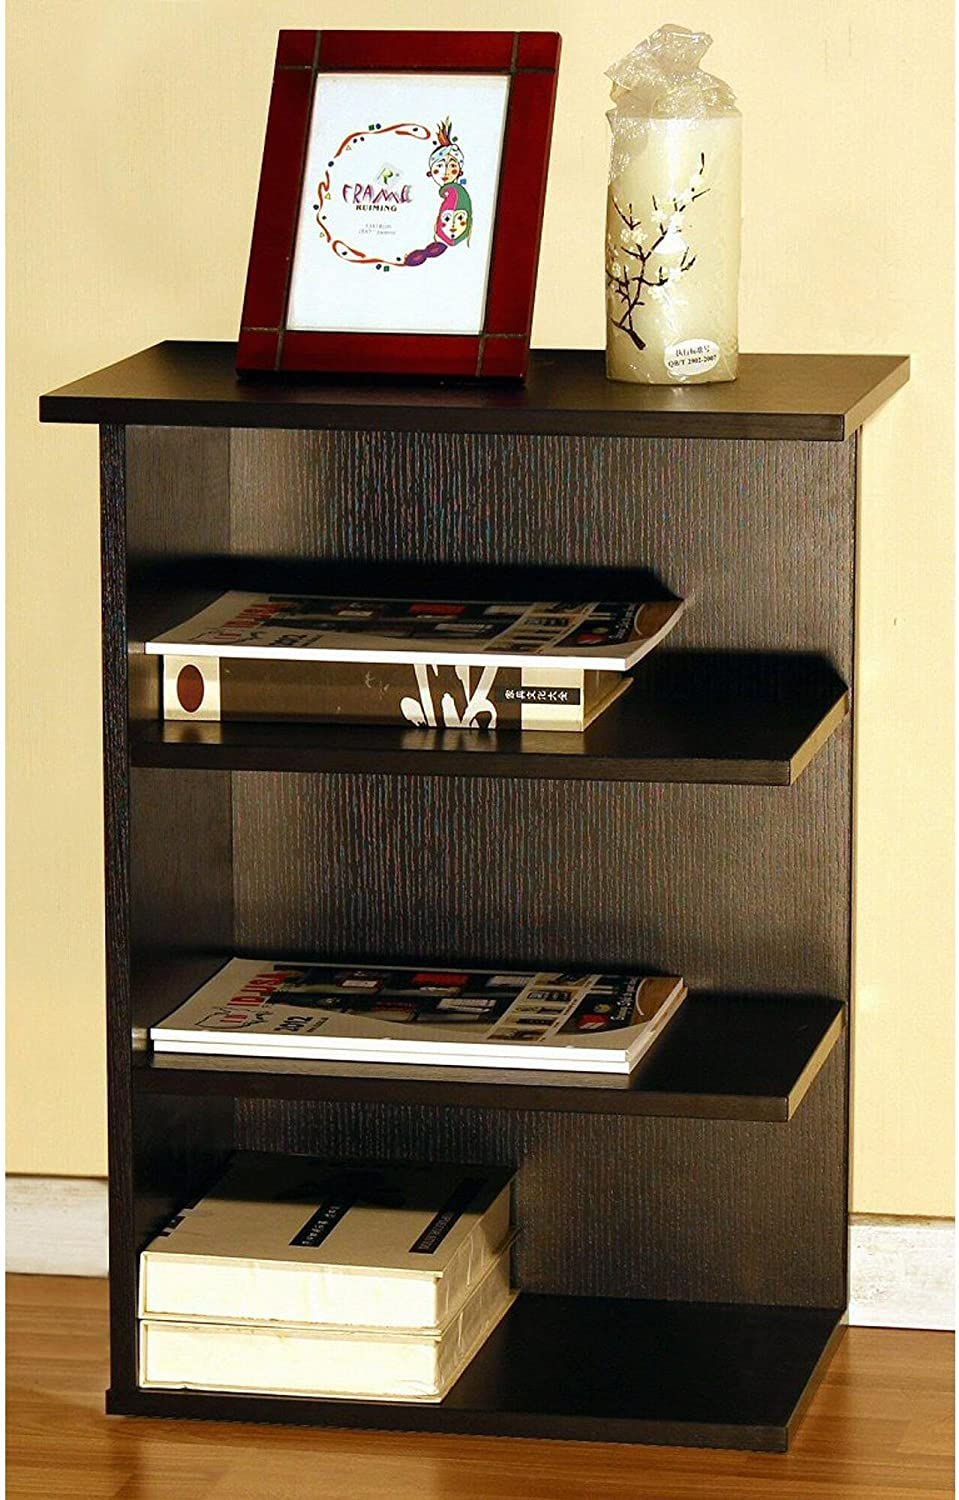 HomeConcept 11451 Magazine Rack Chairside End Table Red Cocoa by by Home Concept